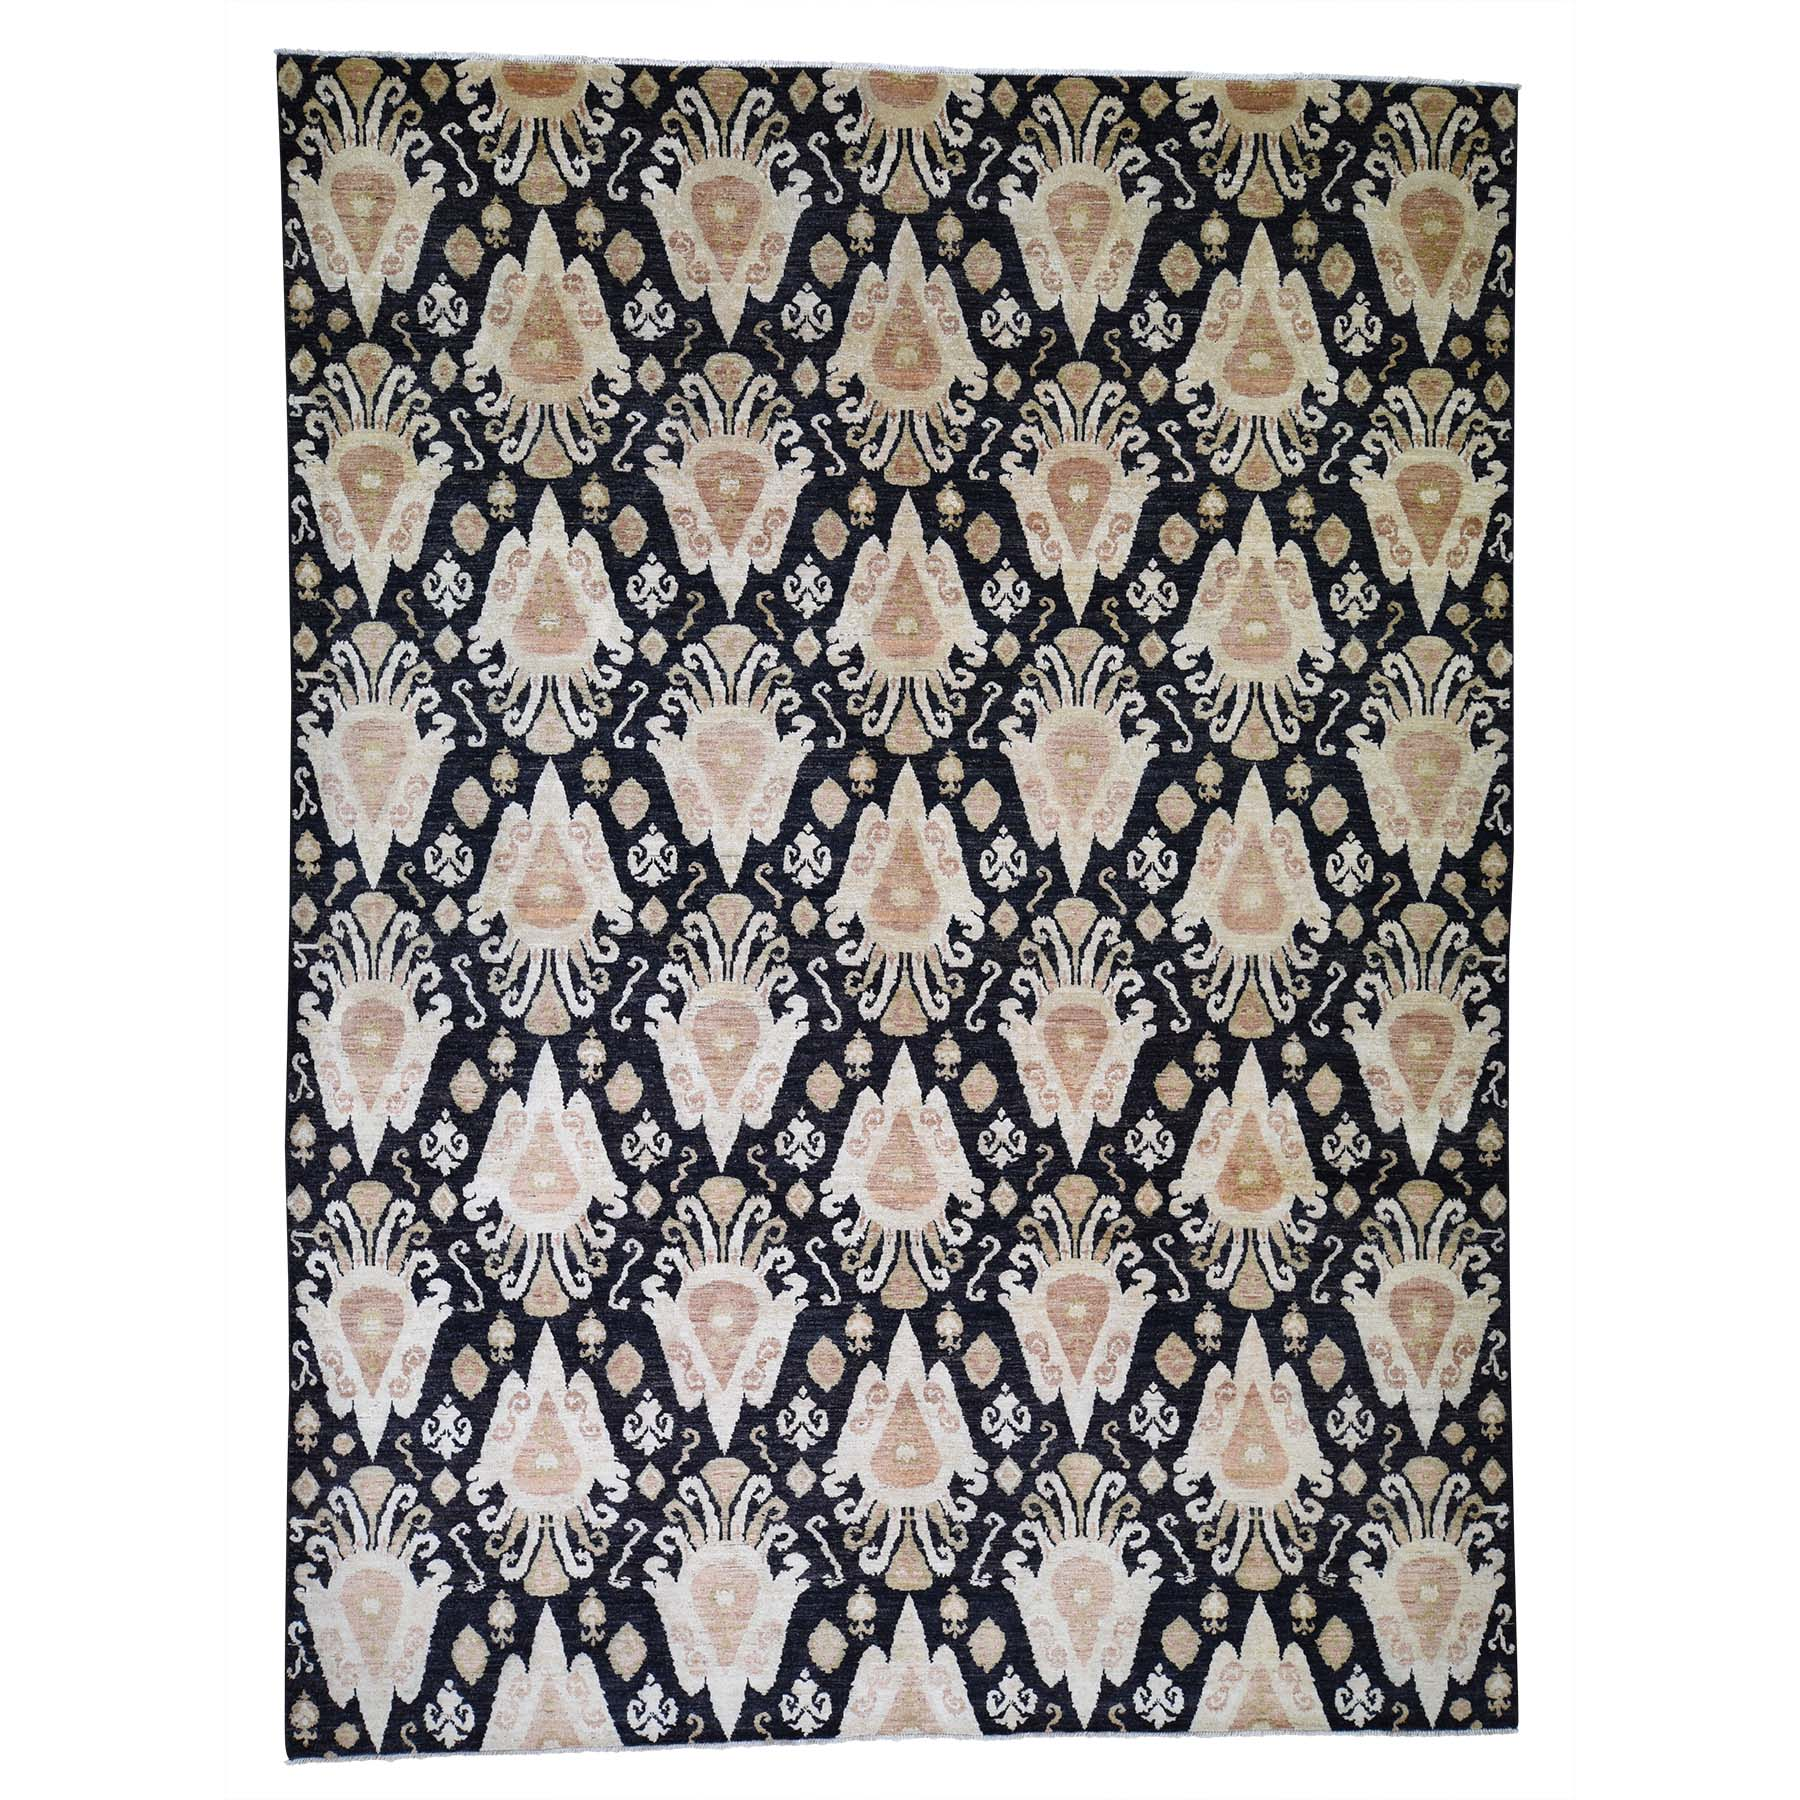 "9'2""x12'4"" Black Ikat Pure Wool Hand Woven Oriental Rug"